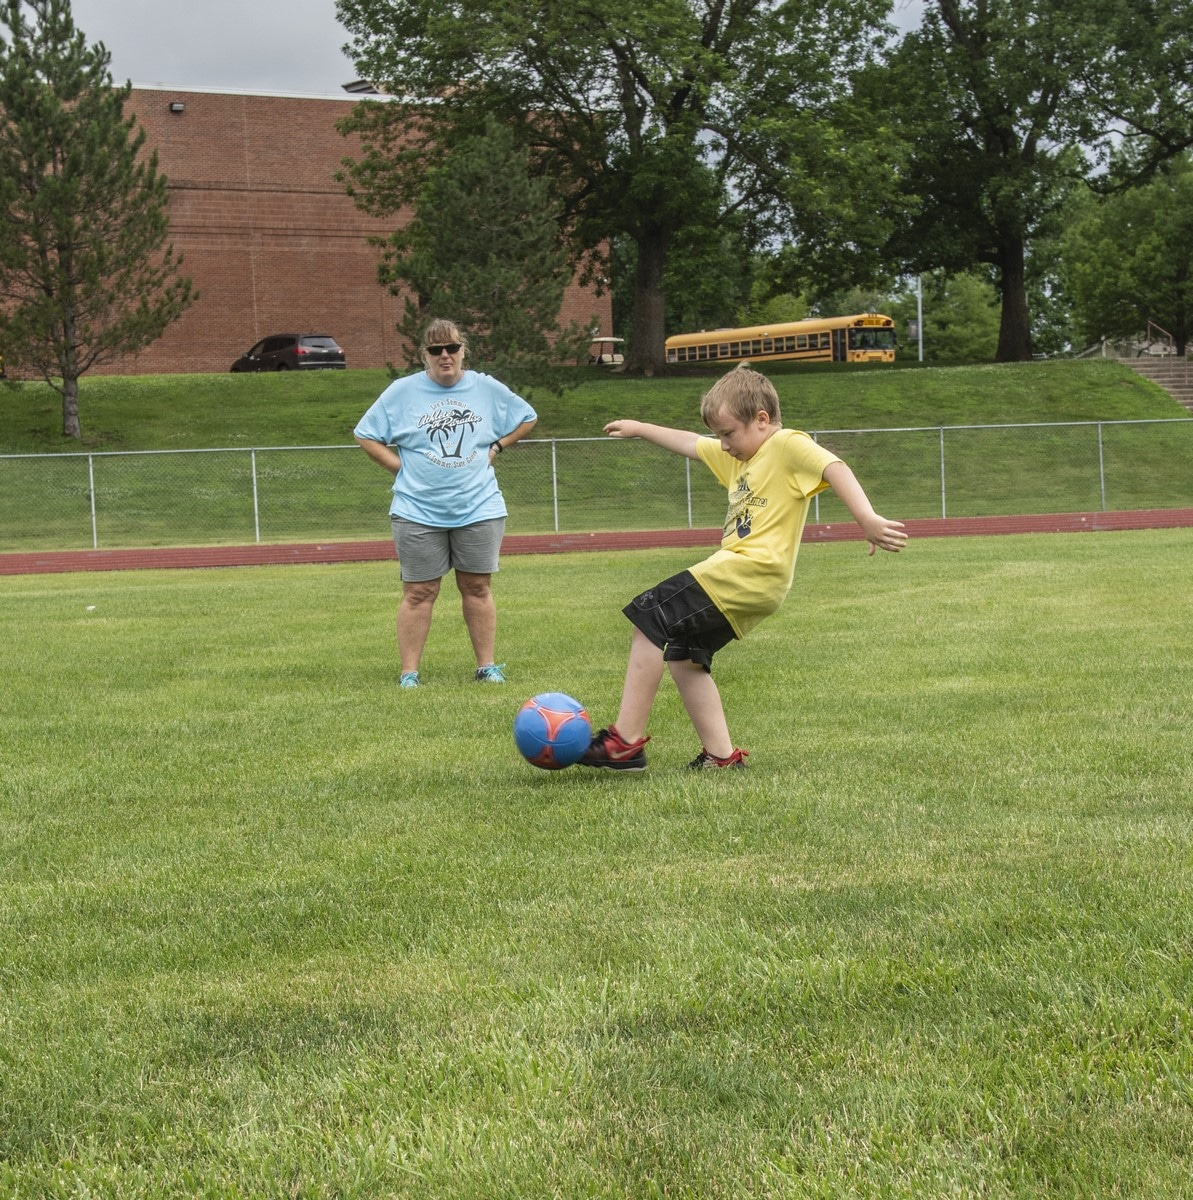 A young athlete strikes a soccer ball with their foot